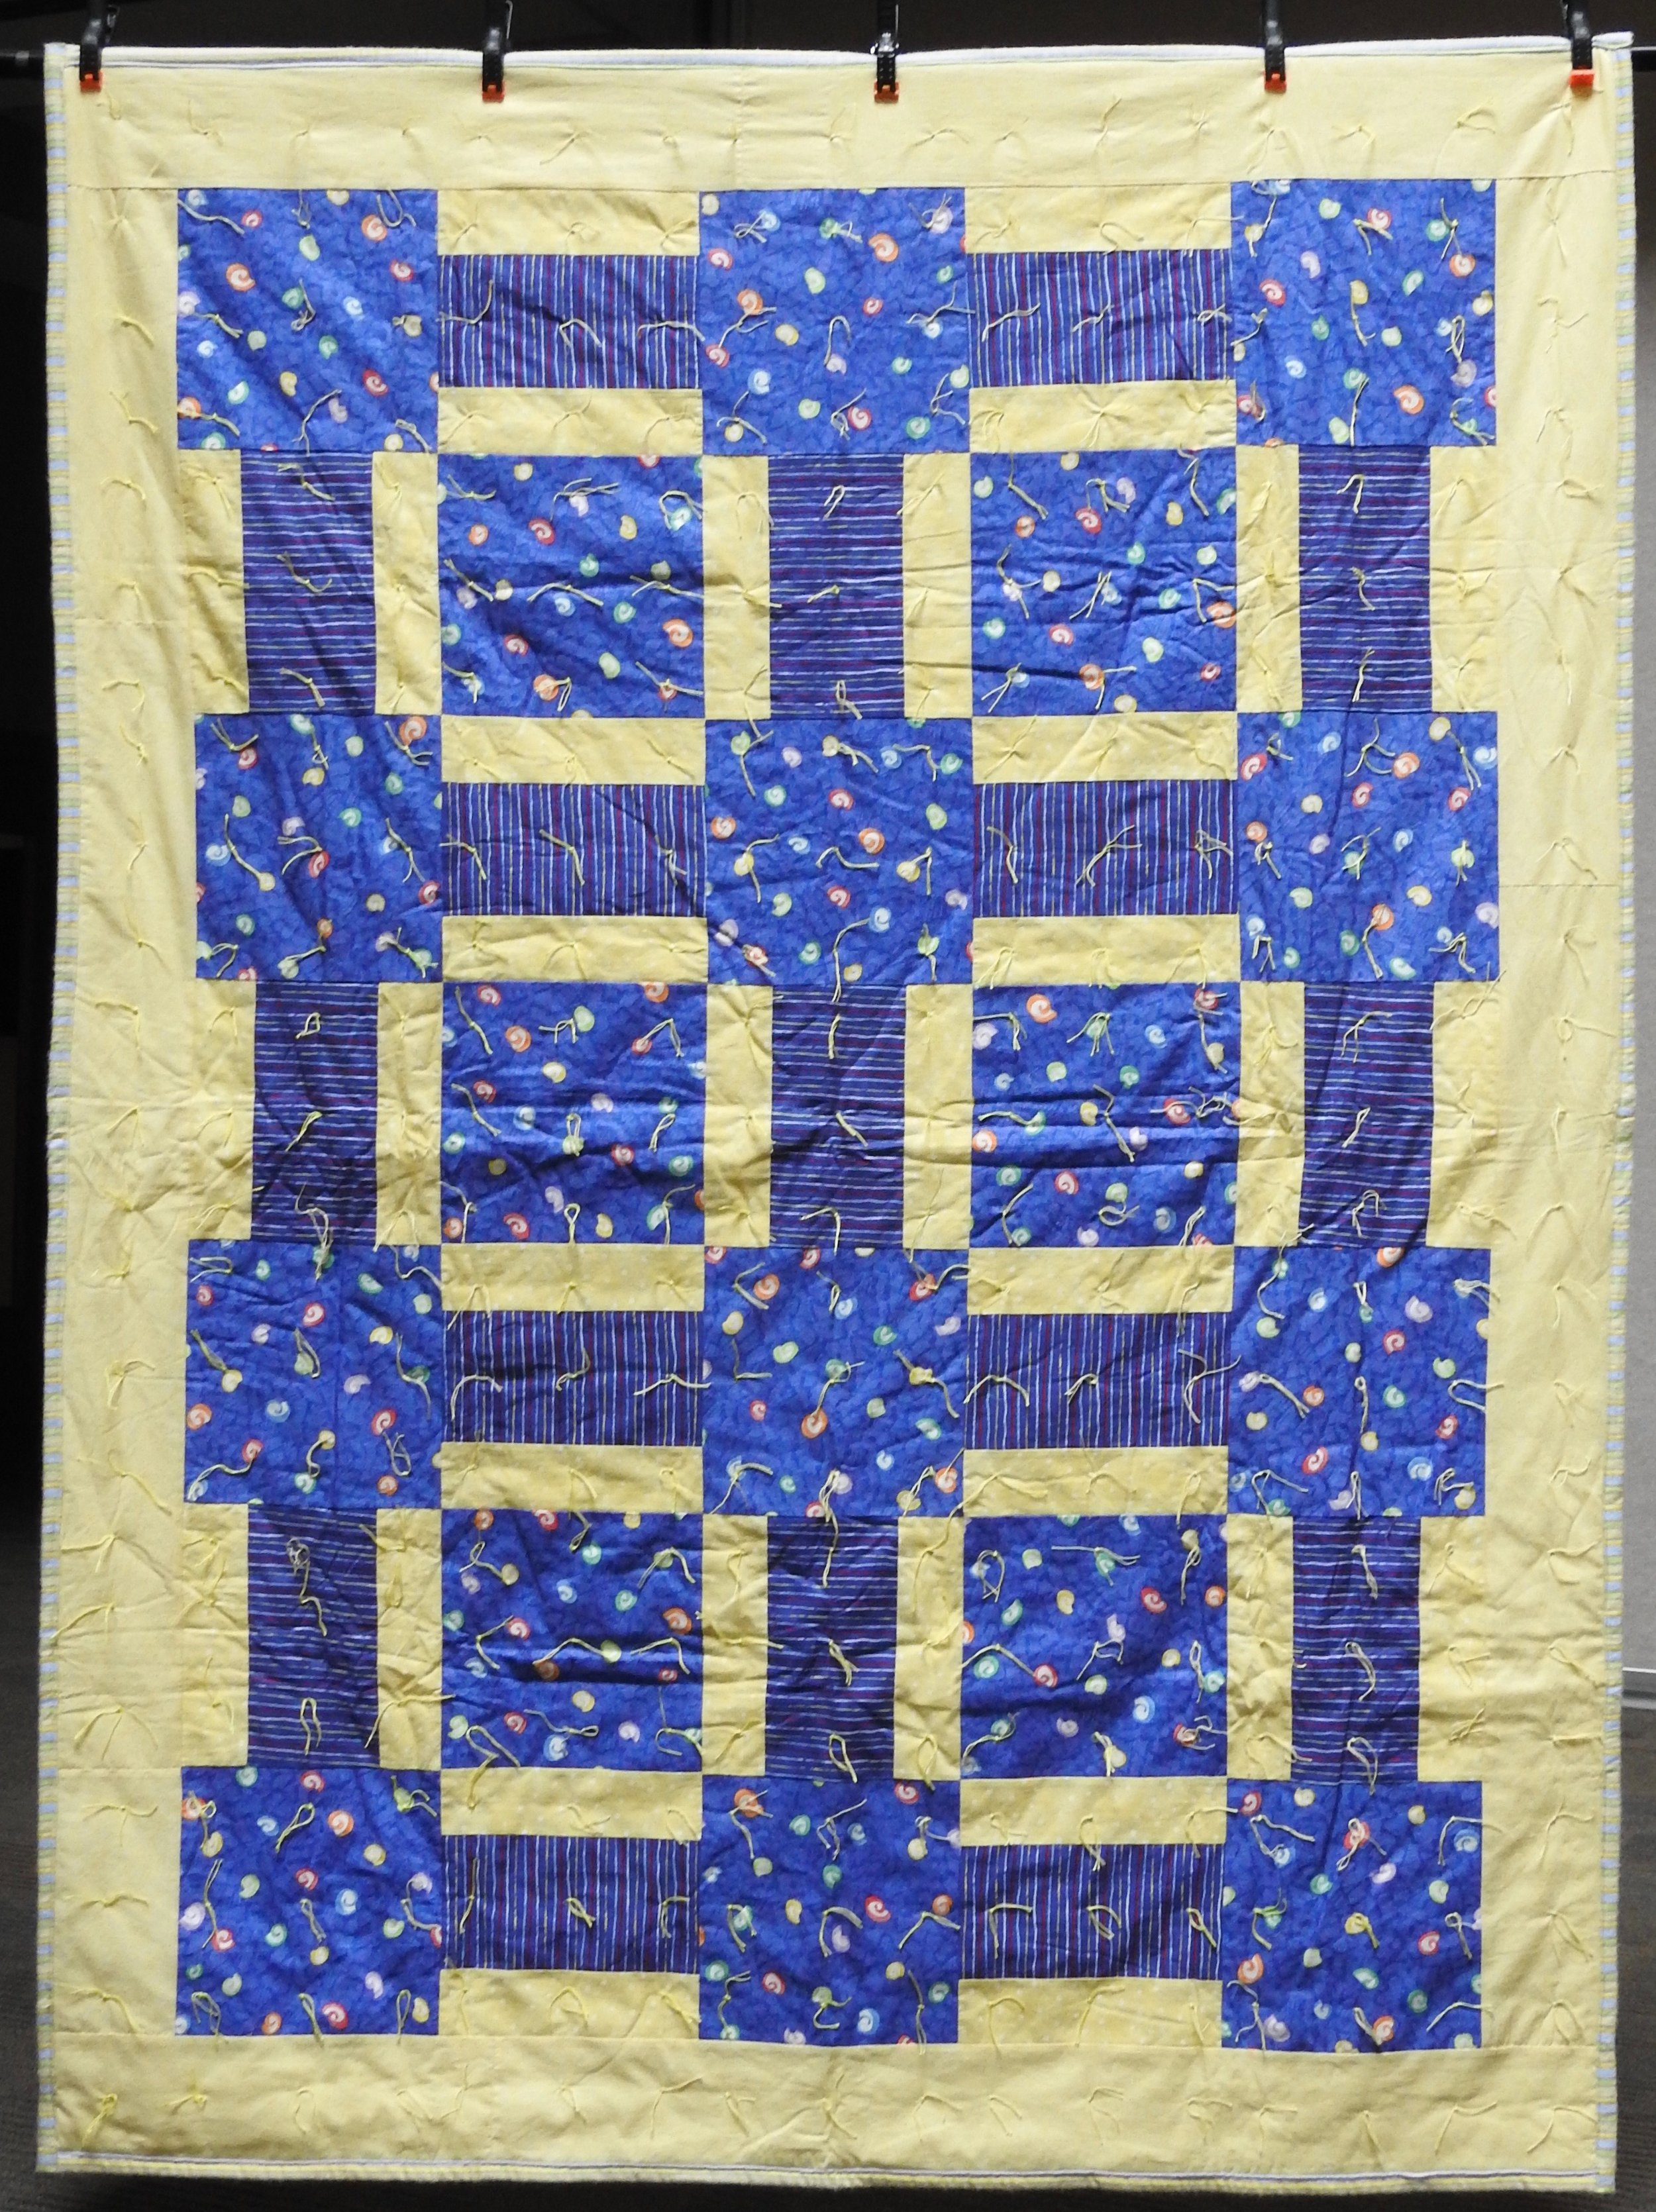 Day & Night Comforter, Pieced & Knotted, donated by Howard-Miami Mennonite Church, 60 x 80""